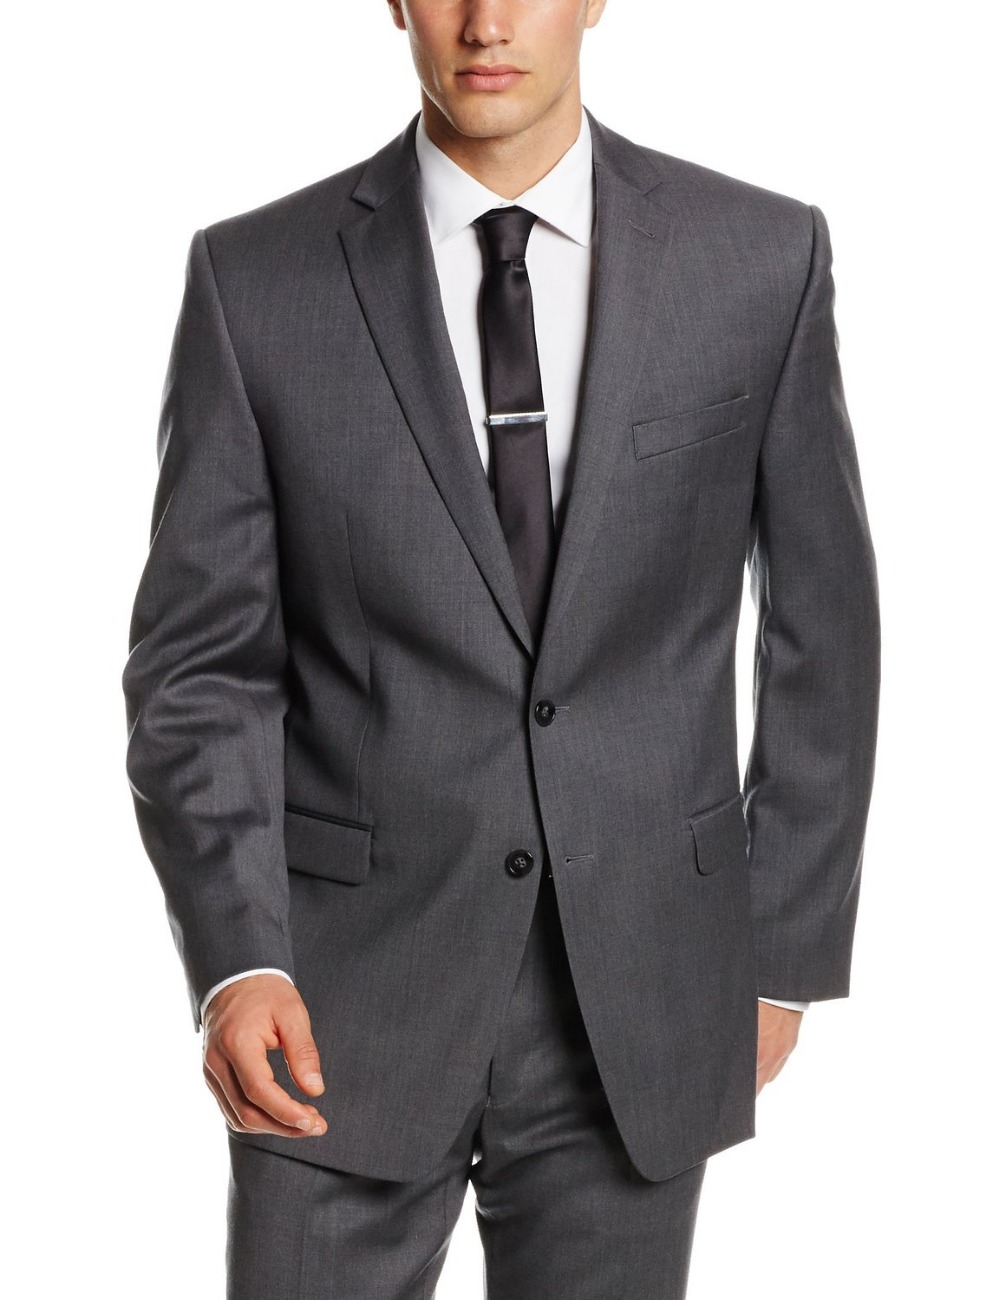 Top Selling custom made New /Dark grey Two Piece Suit with Jacket ...